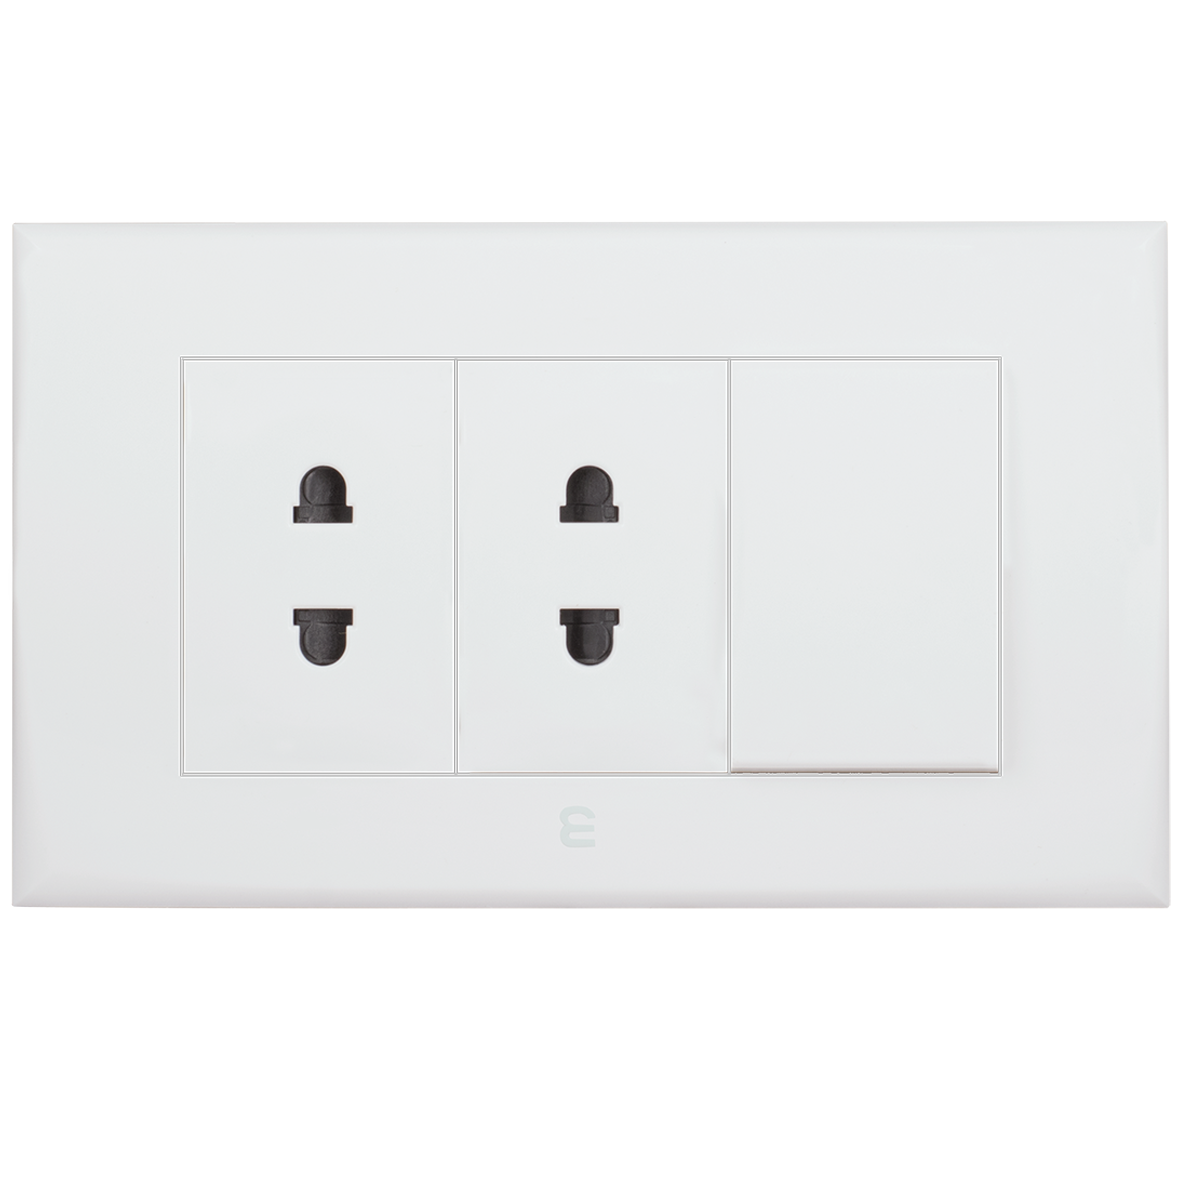 Double socket euro-american type + one way switch